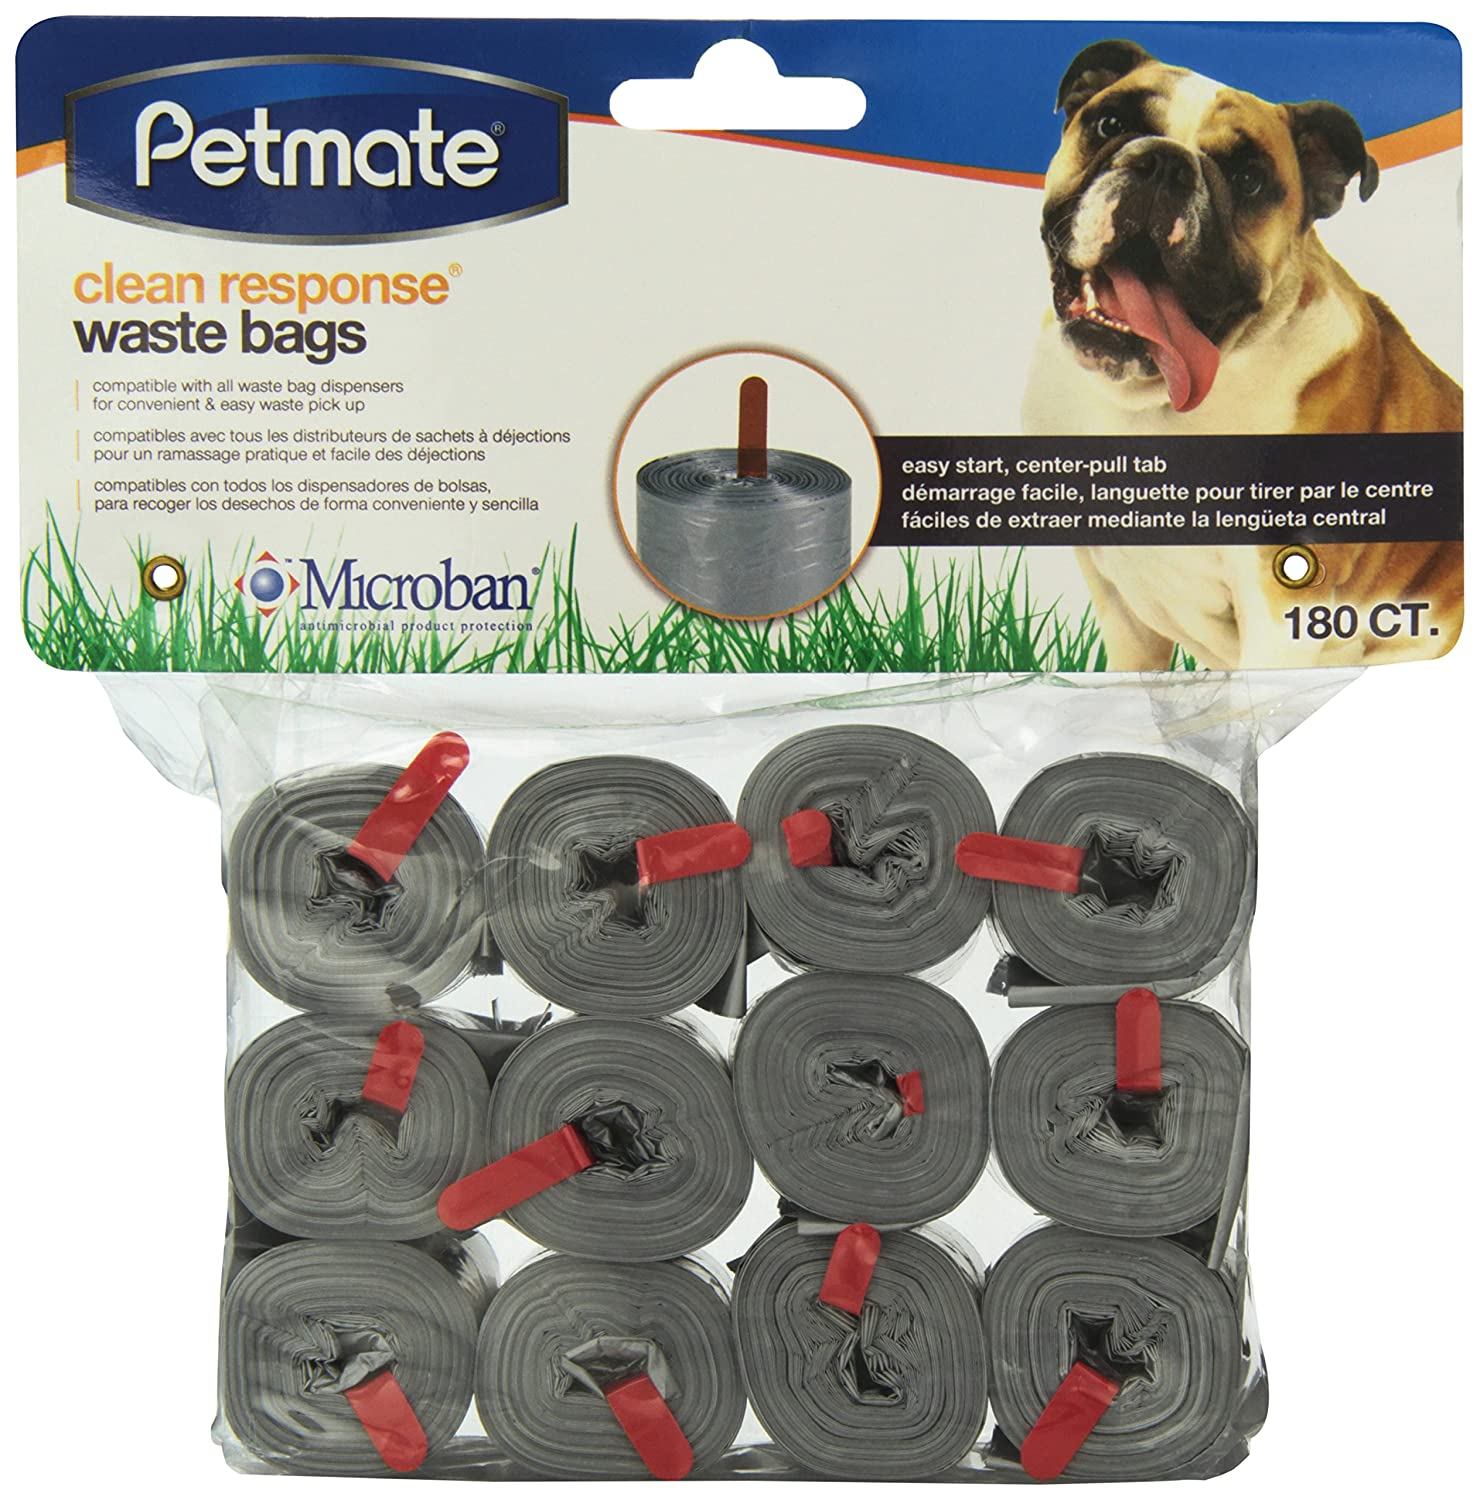 Amazon.com : Petmate 71097 90 Count Clean Response Pets Waste Bag Refills, Assorted (Black/Blue/Silver) : Pet Supplies